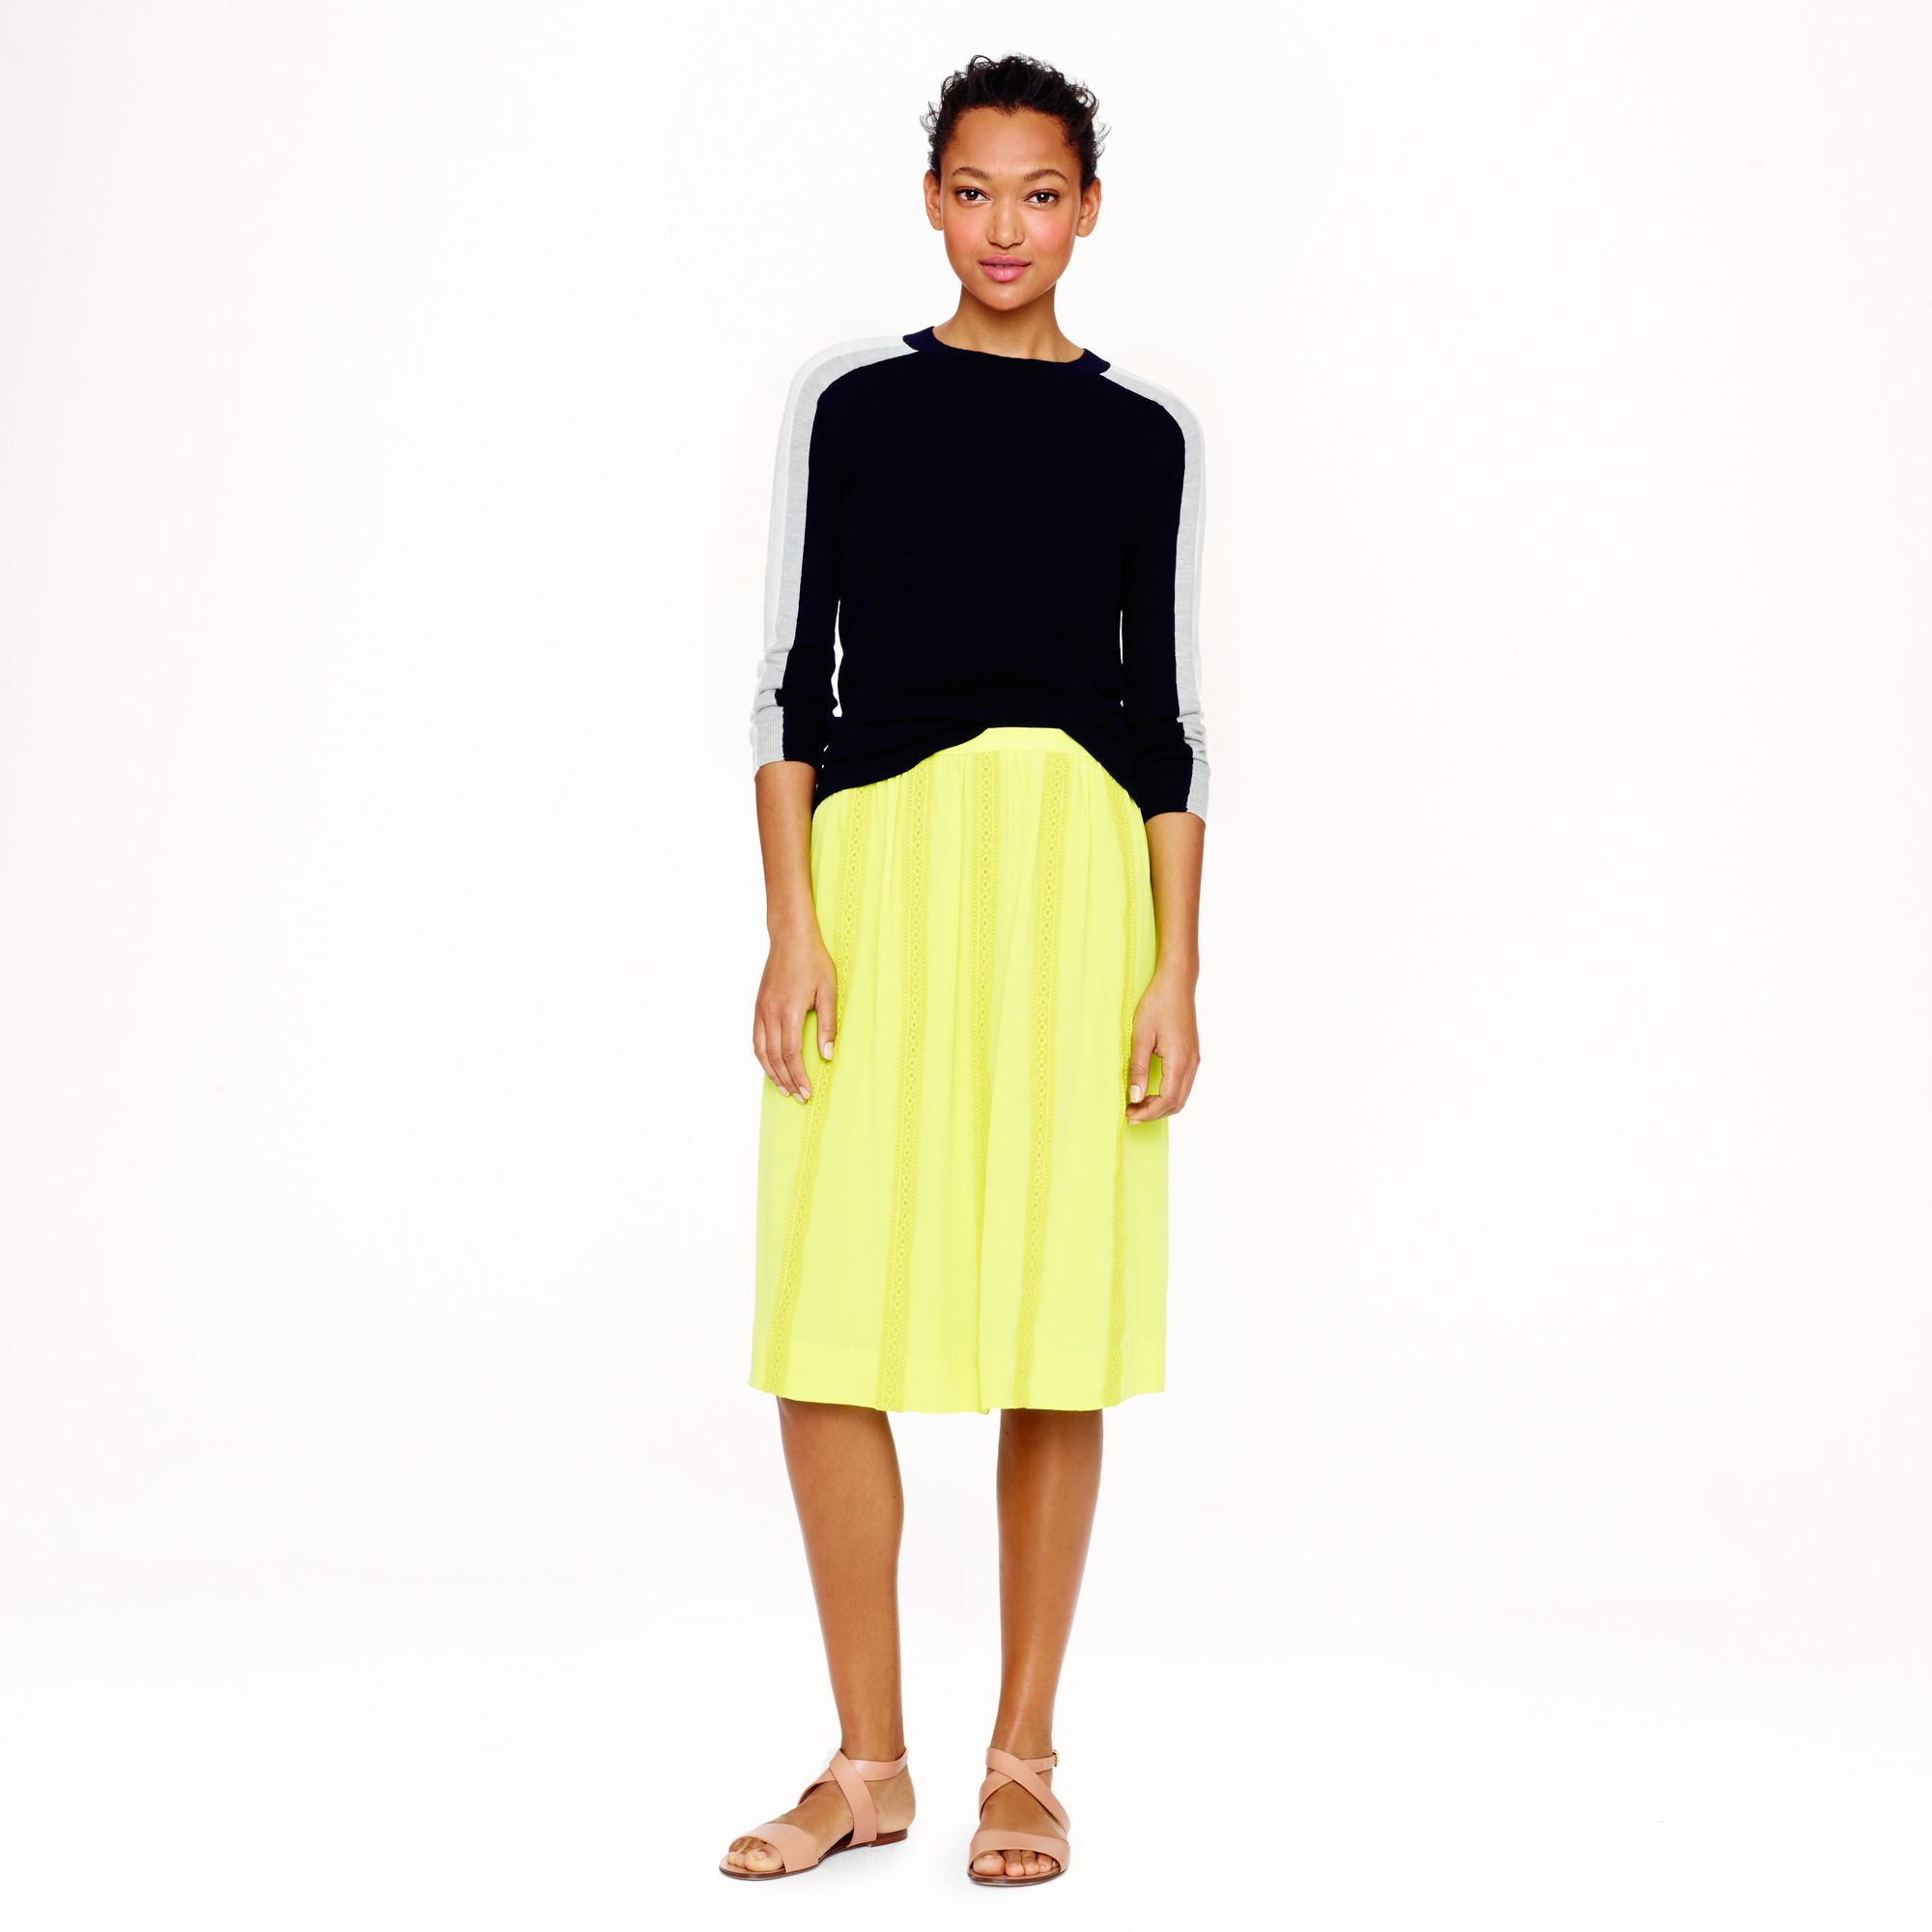 c51e92aea J.Crew Collection Lacestripe Silk Skirt in Yellow - Lyst